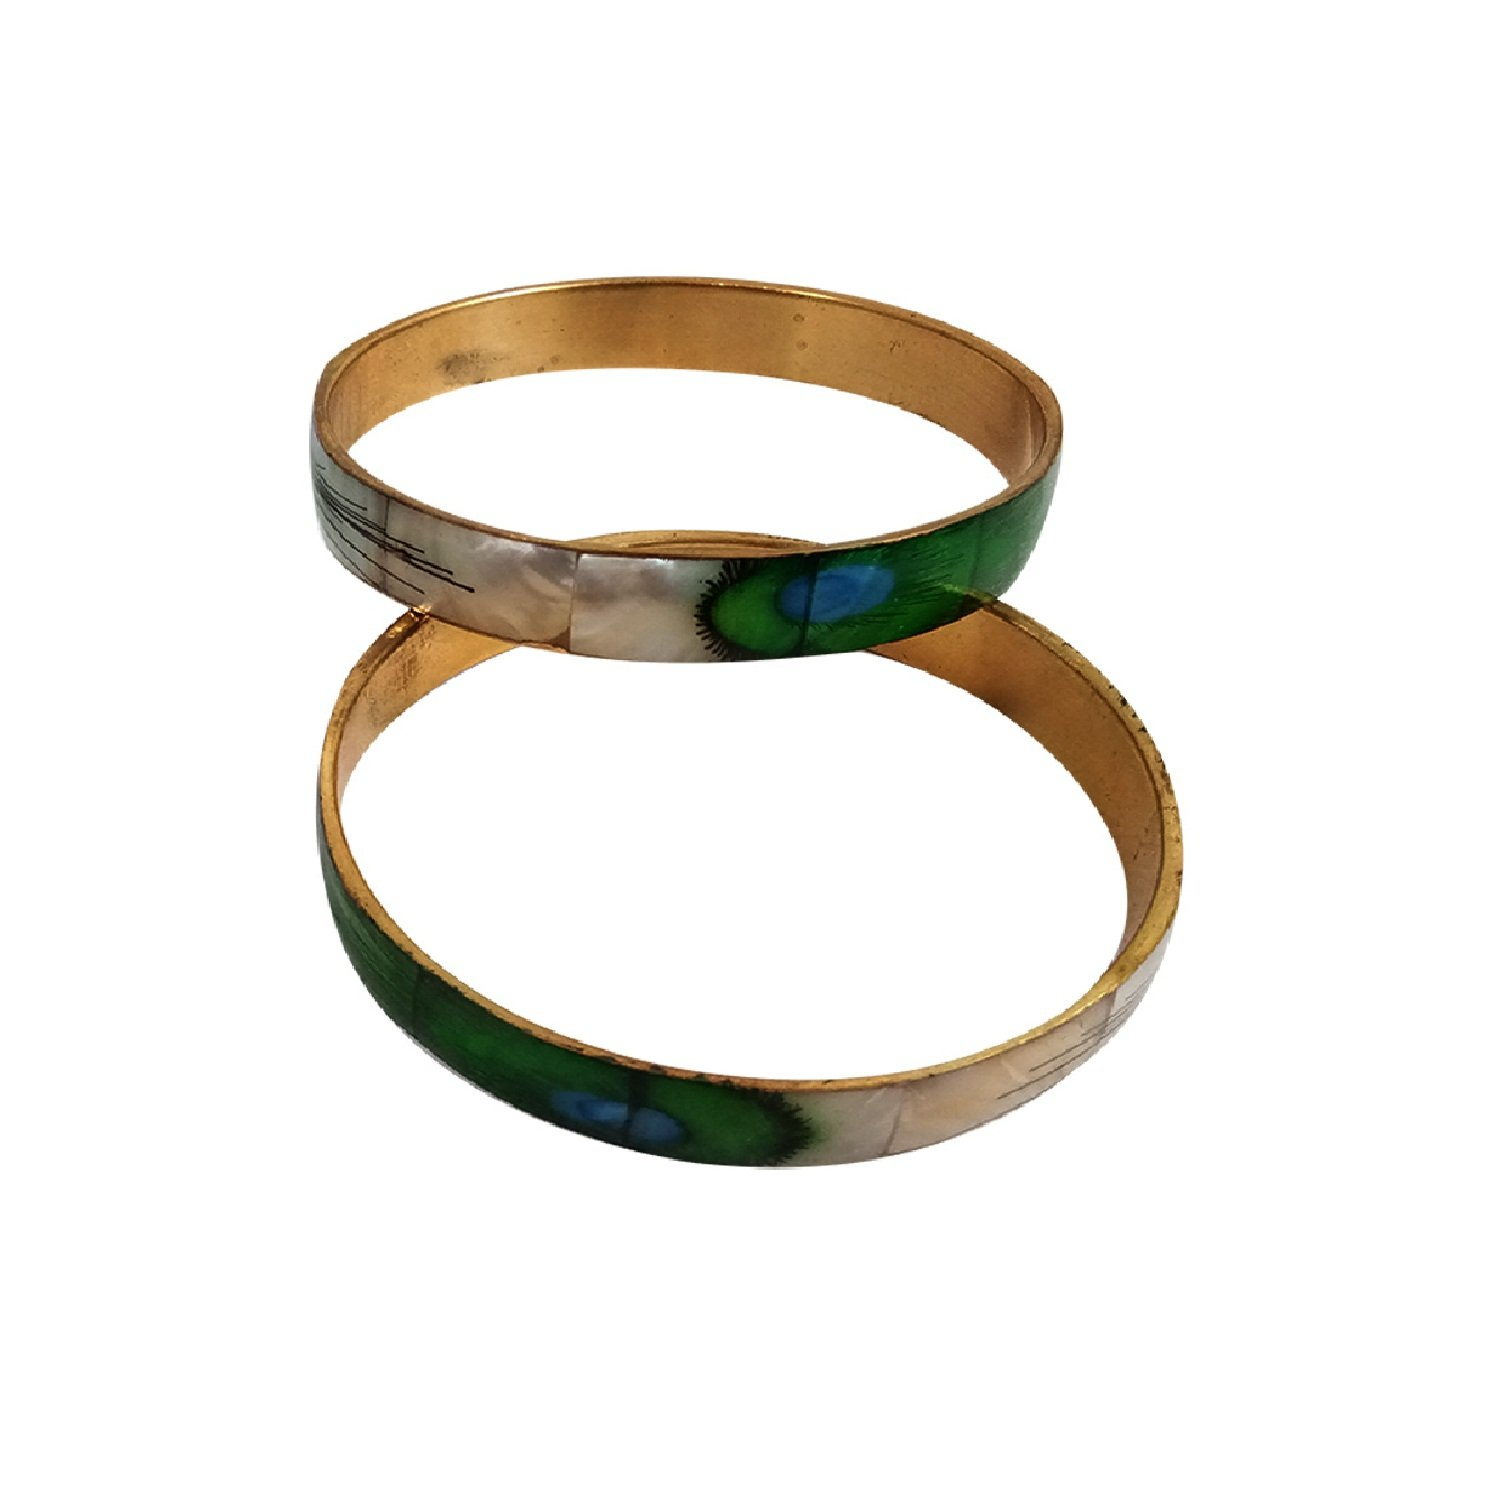 College Handmade Seashells Craft Fashion Bangles Set of 2 Antique Style Wearing in Party Casual and Your Daily Life